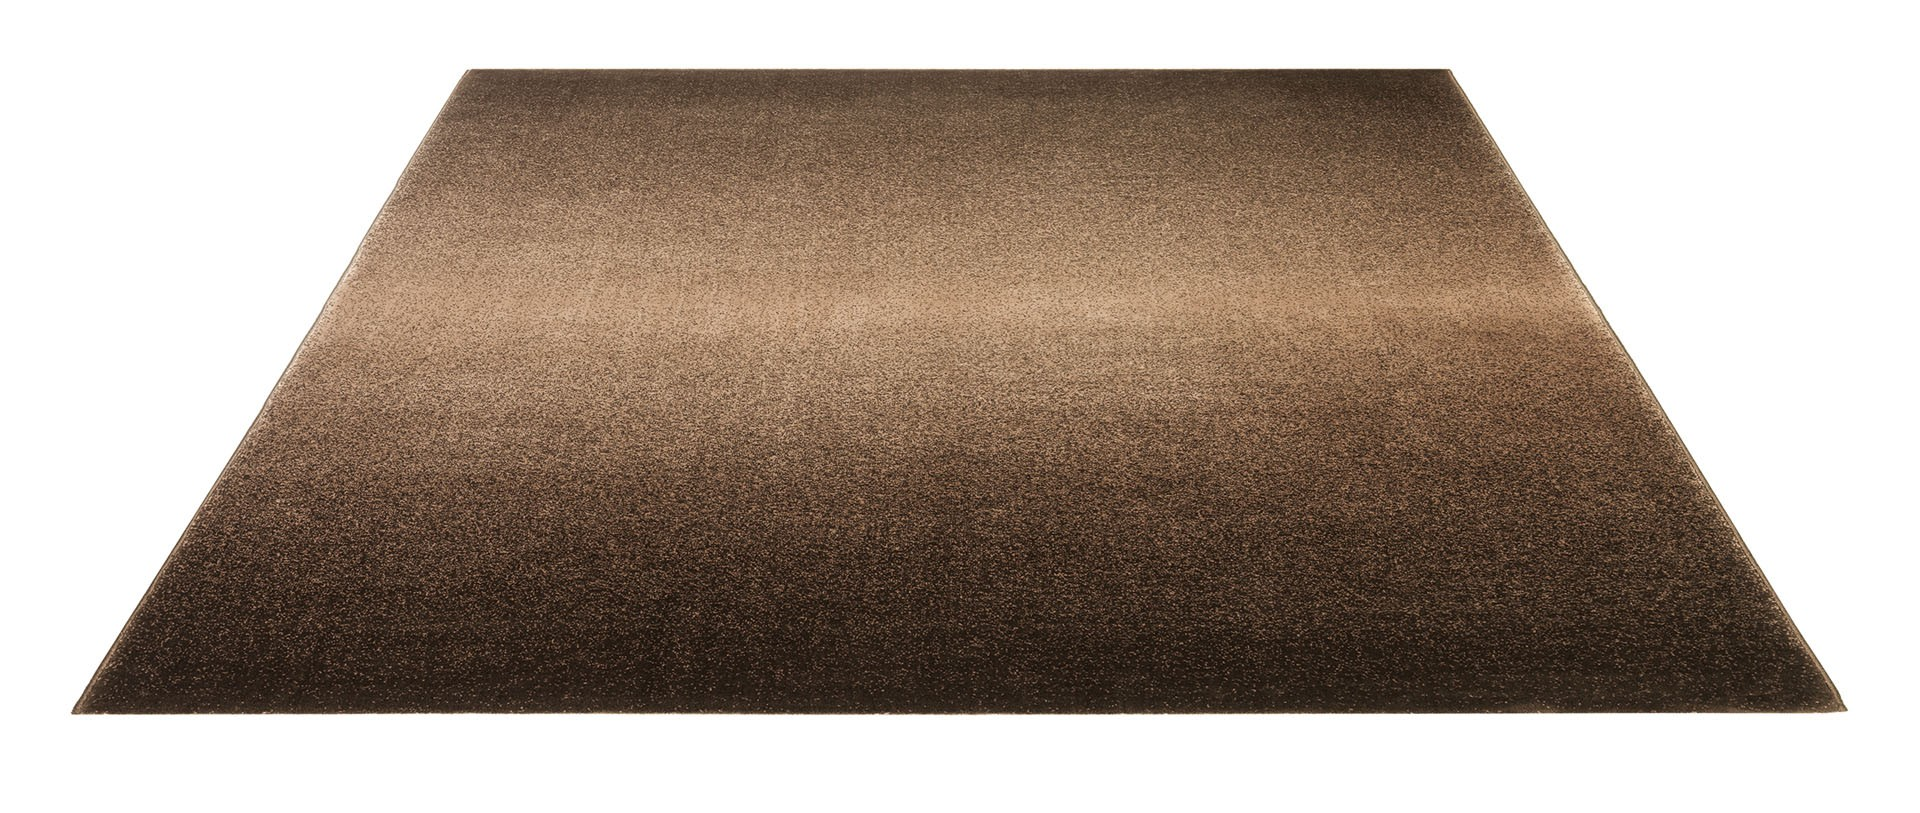 Tapis de salon marron Richmond par Esprit Home